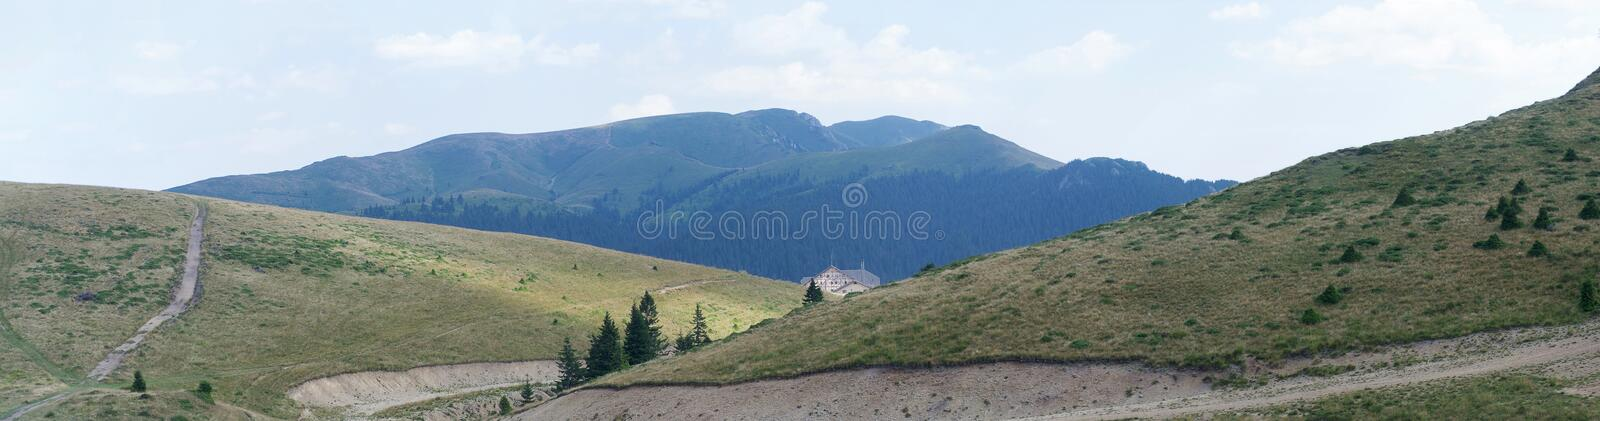 Mountain landscape with chalet in the background royalty free stock images